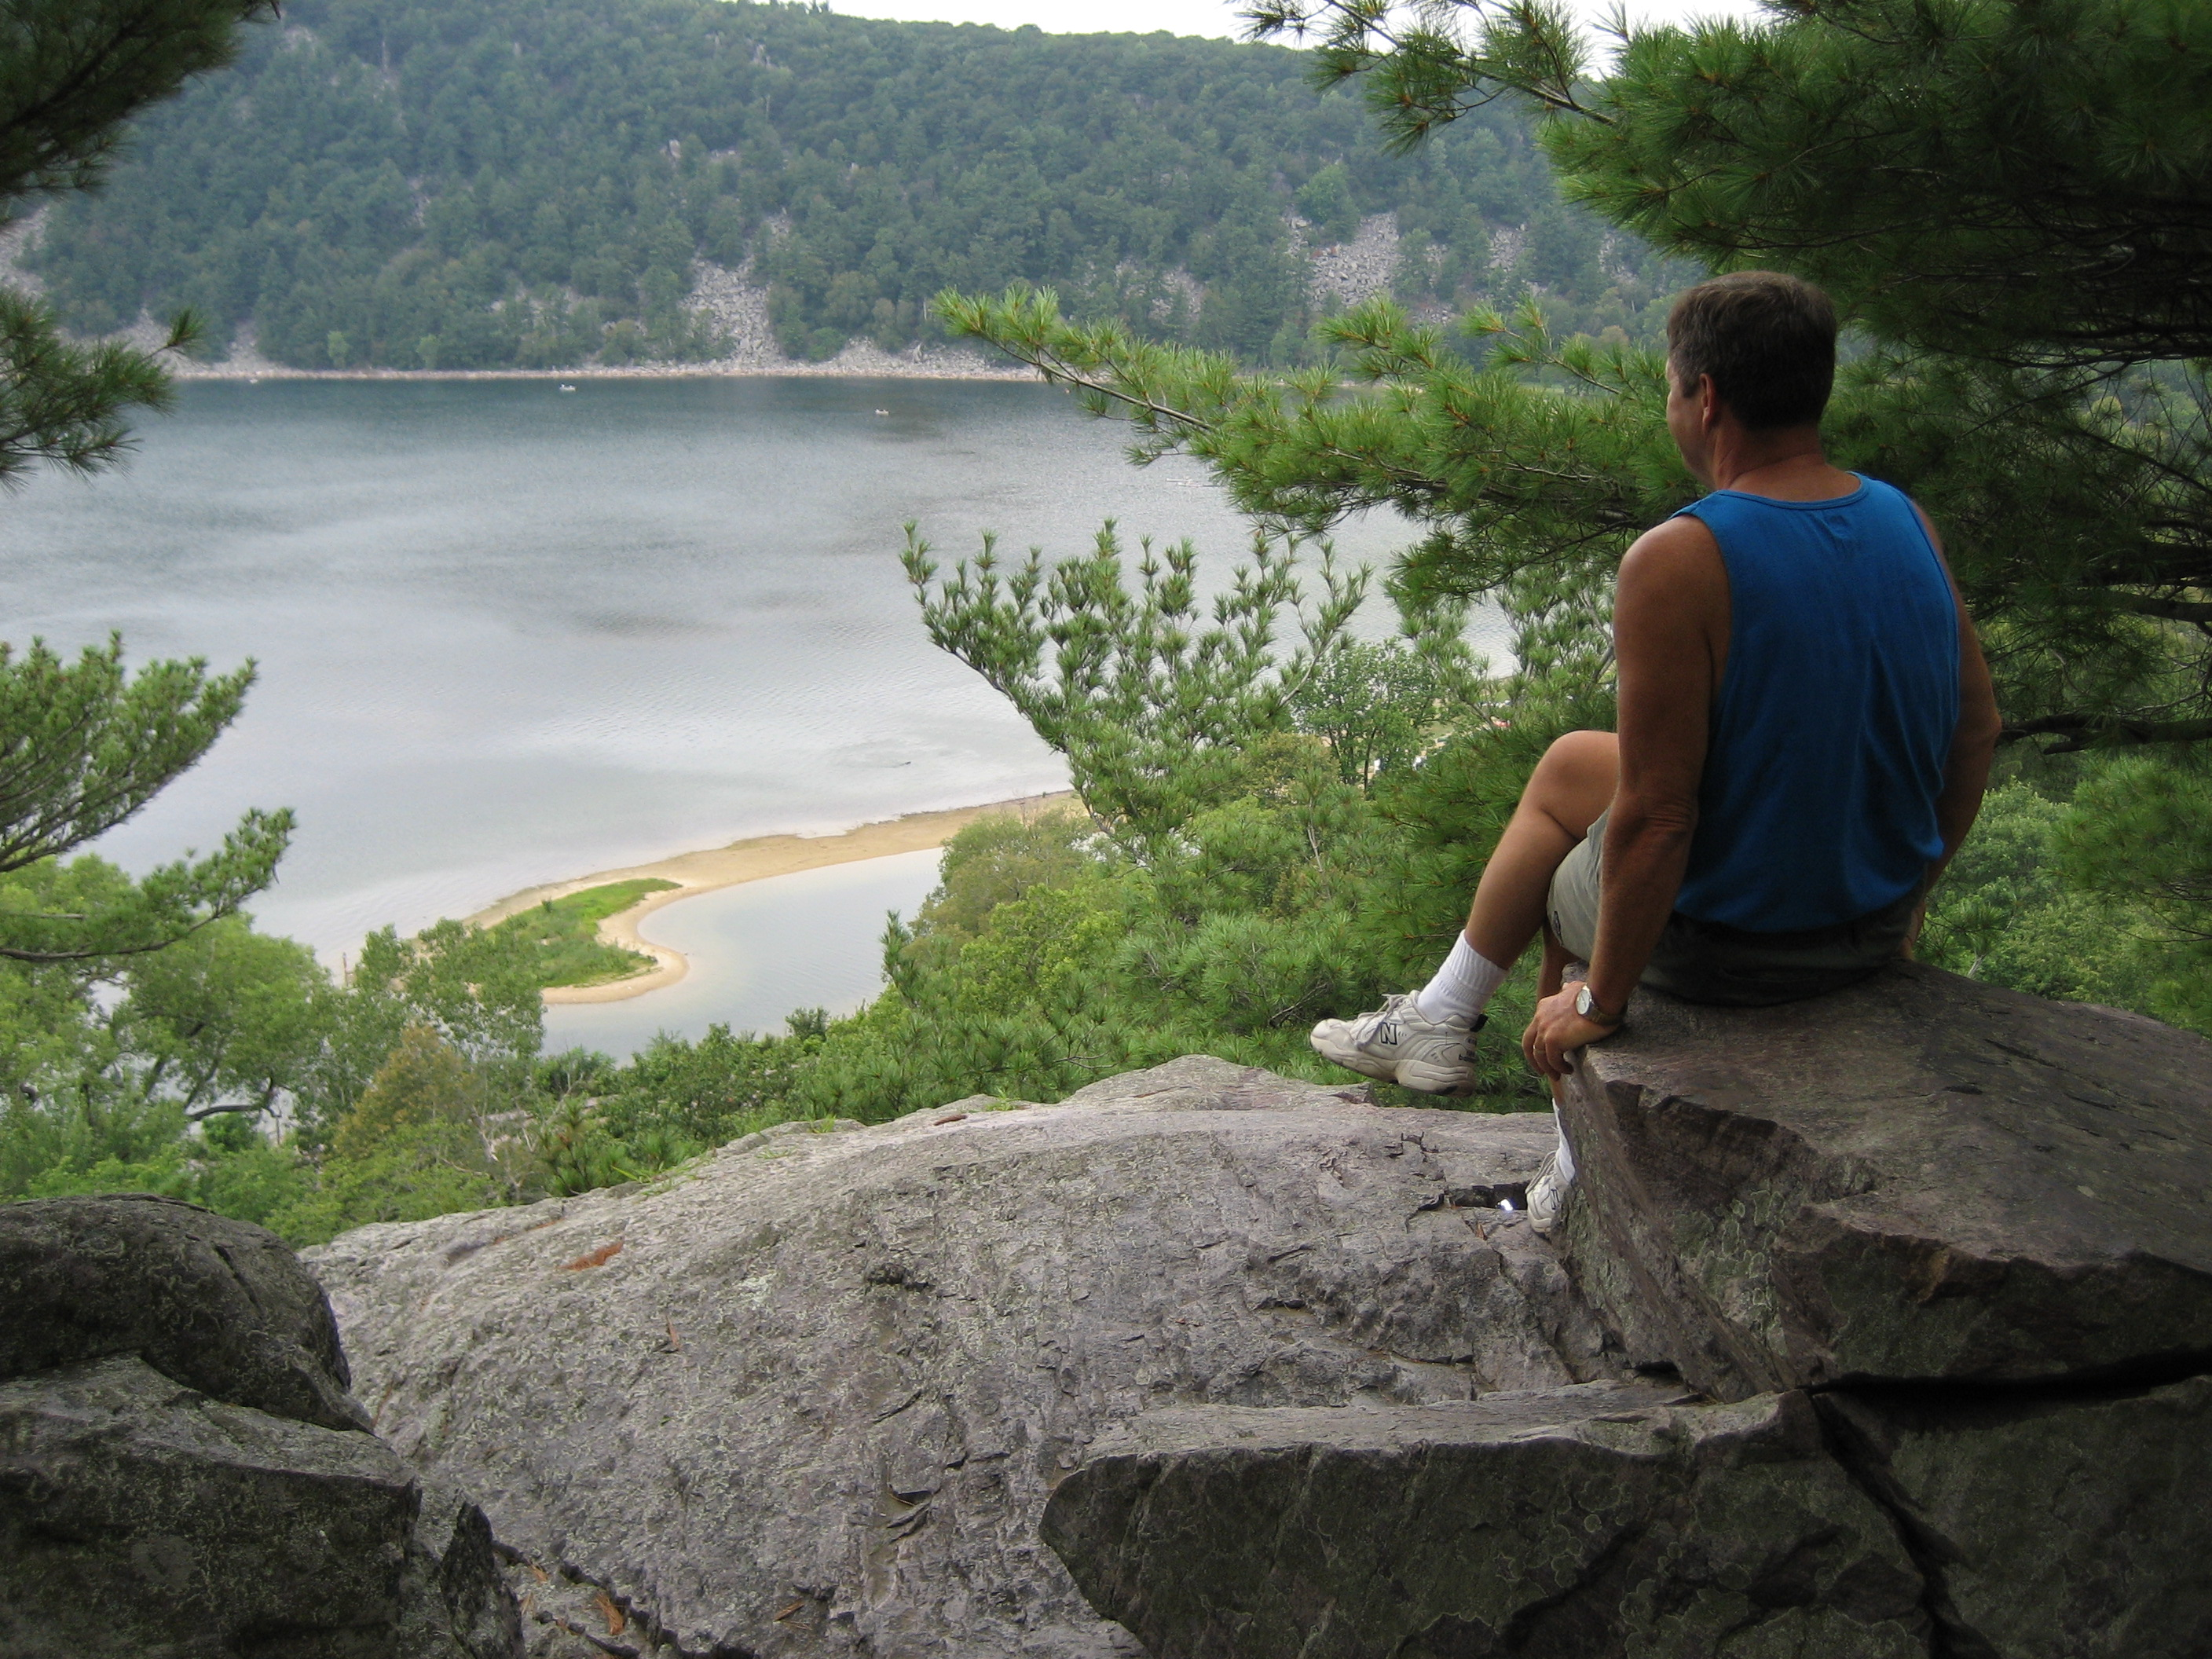 gallagher_lucas man looking over a lake trees rock sitting relaxing